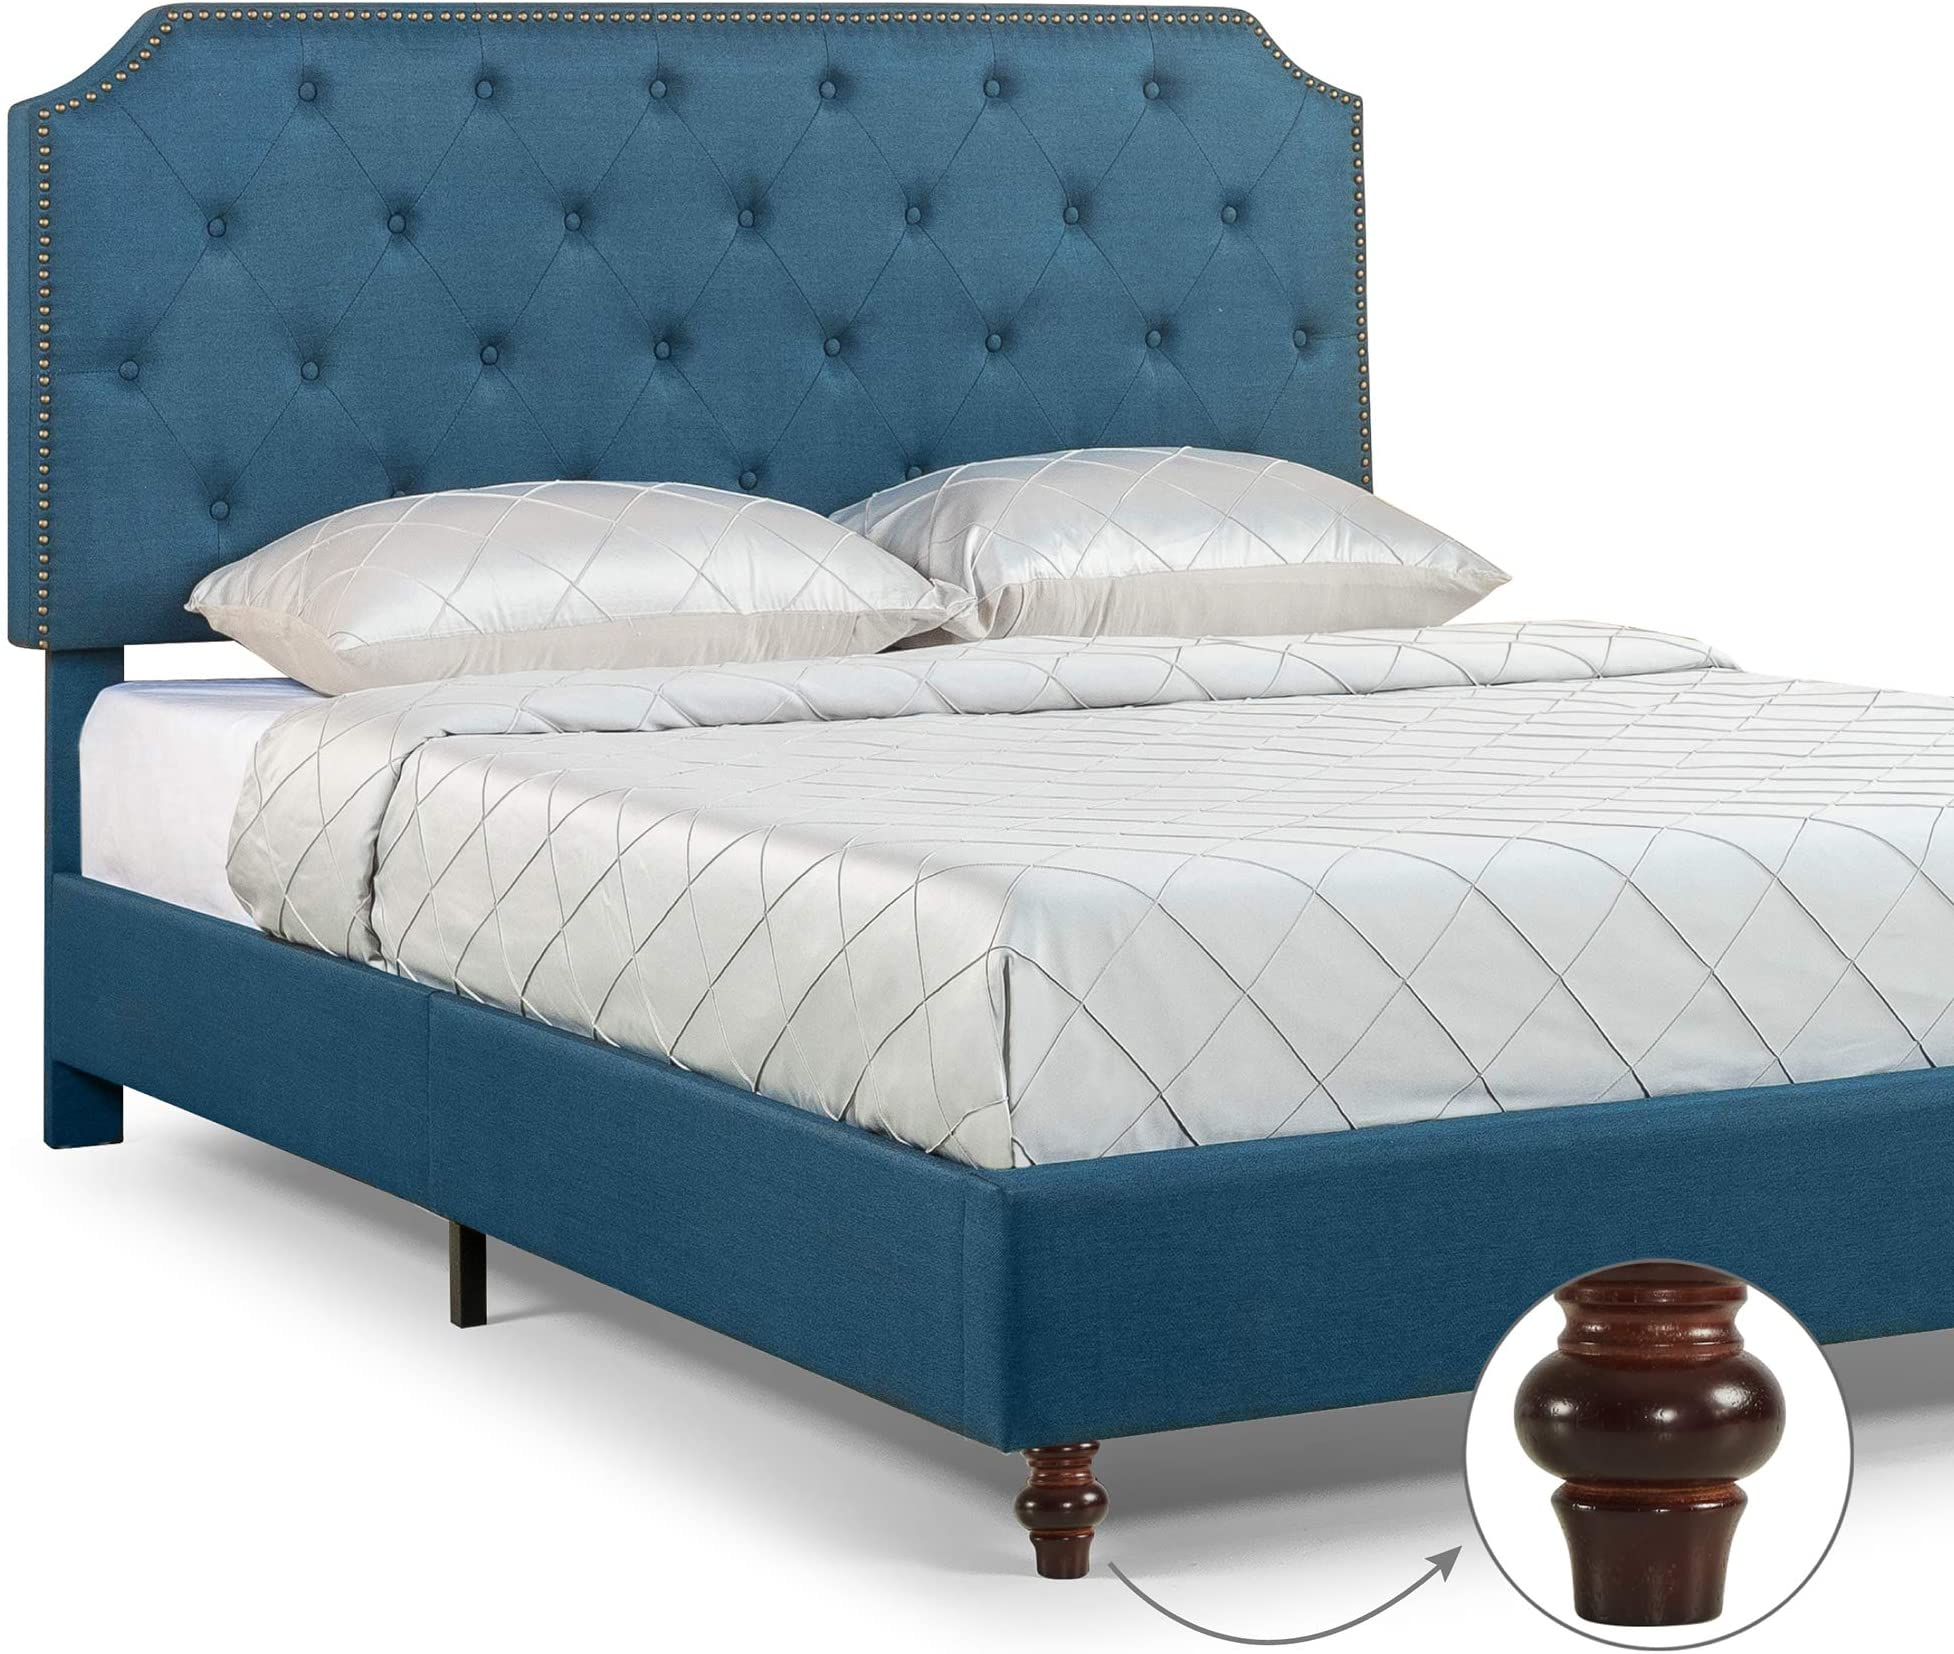 ZINUS Andover Upholstered Bed Frame / Tufted Bed Frame with Nailhead Detail / Adjustable Headboard / Easy Assembly, King